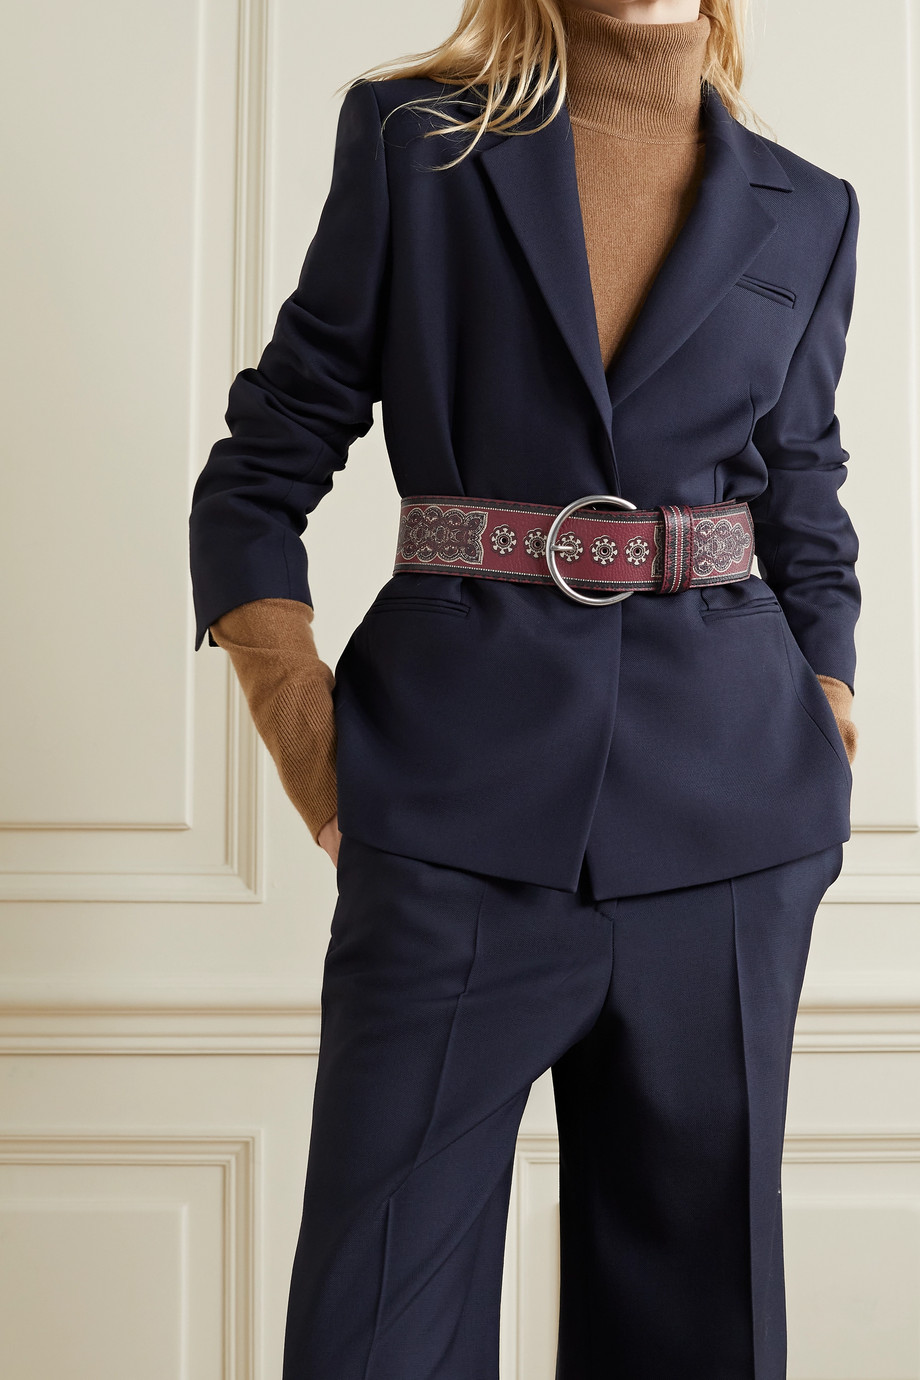 ETRO Printed textured-leather belt